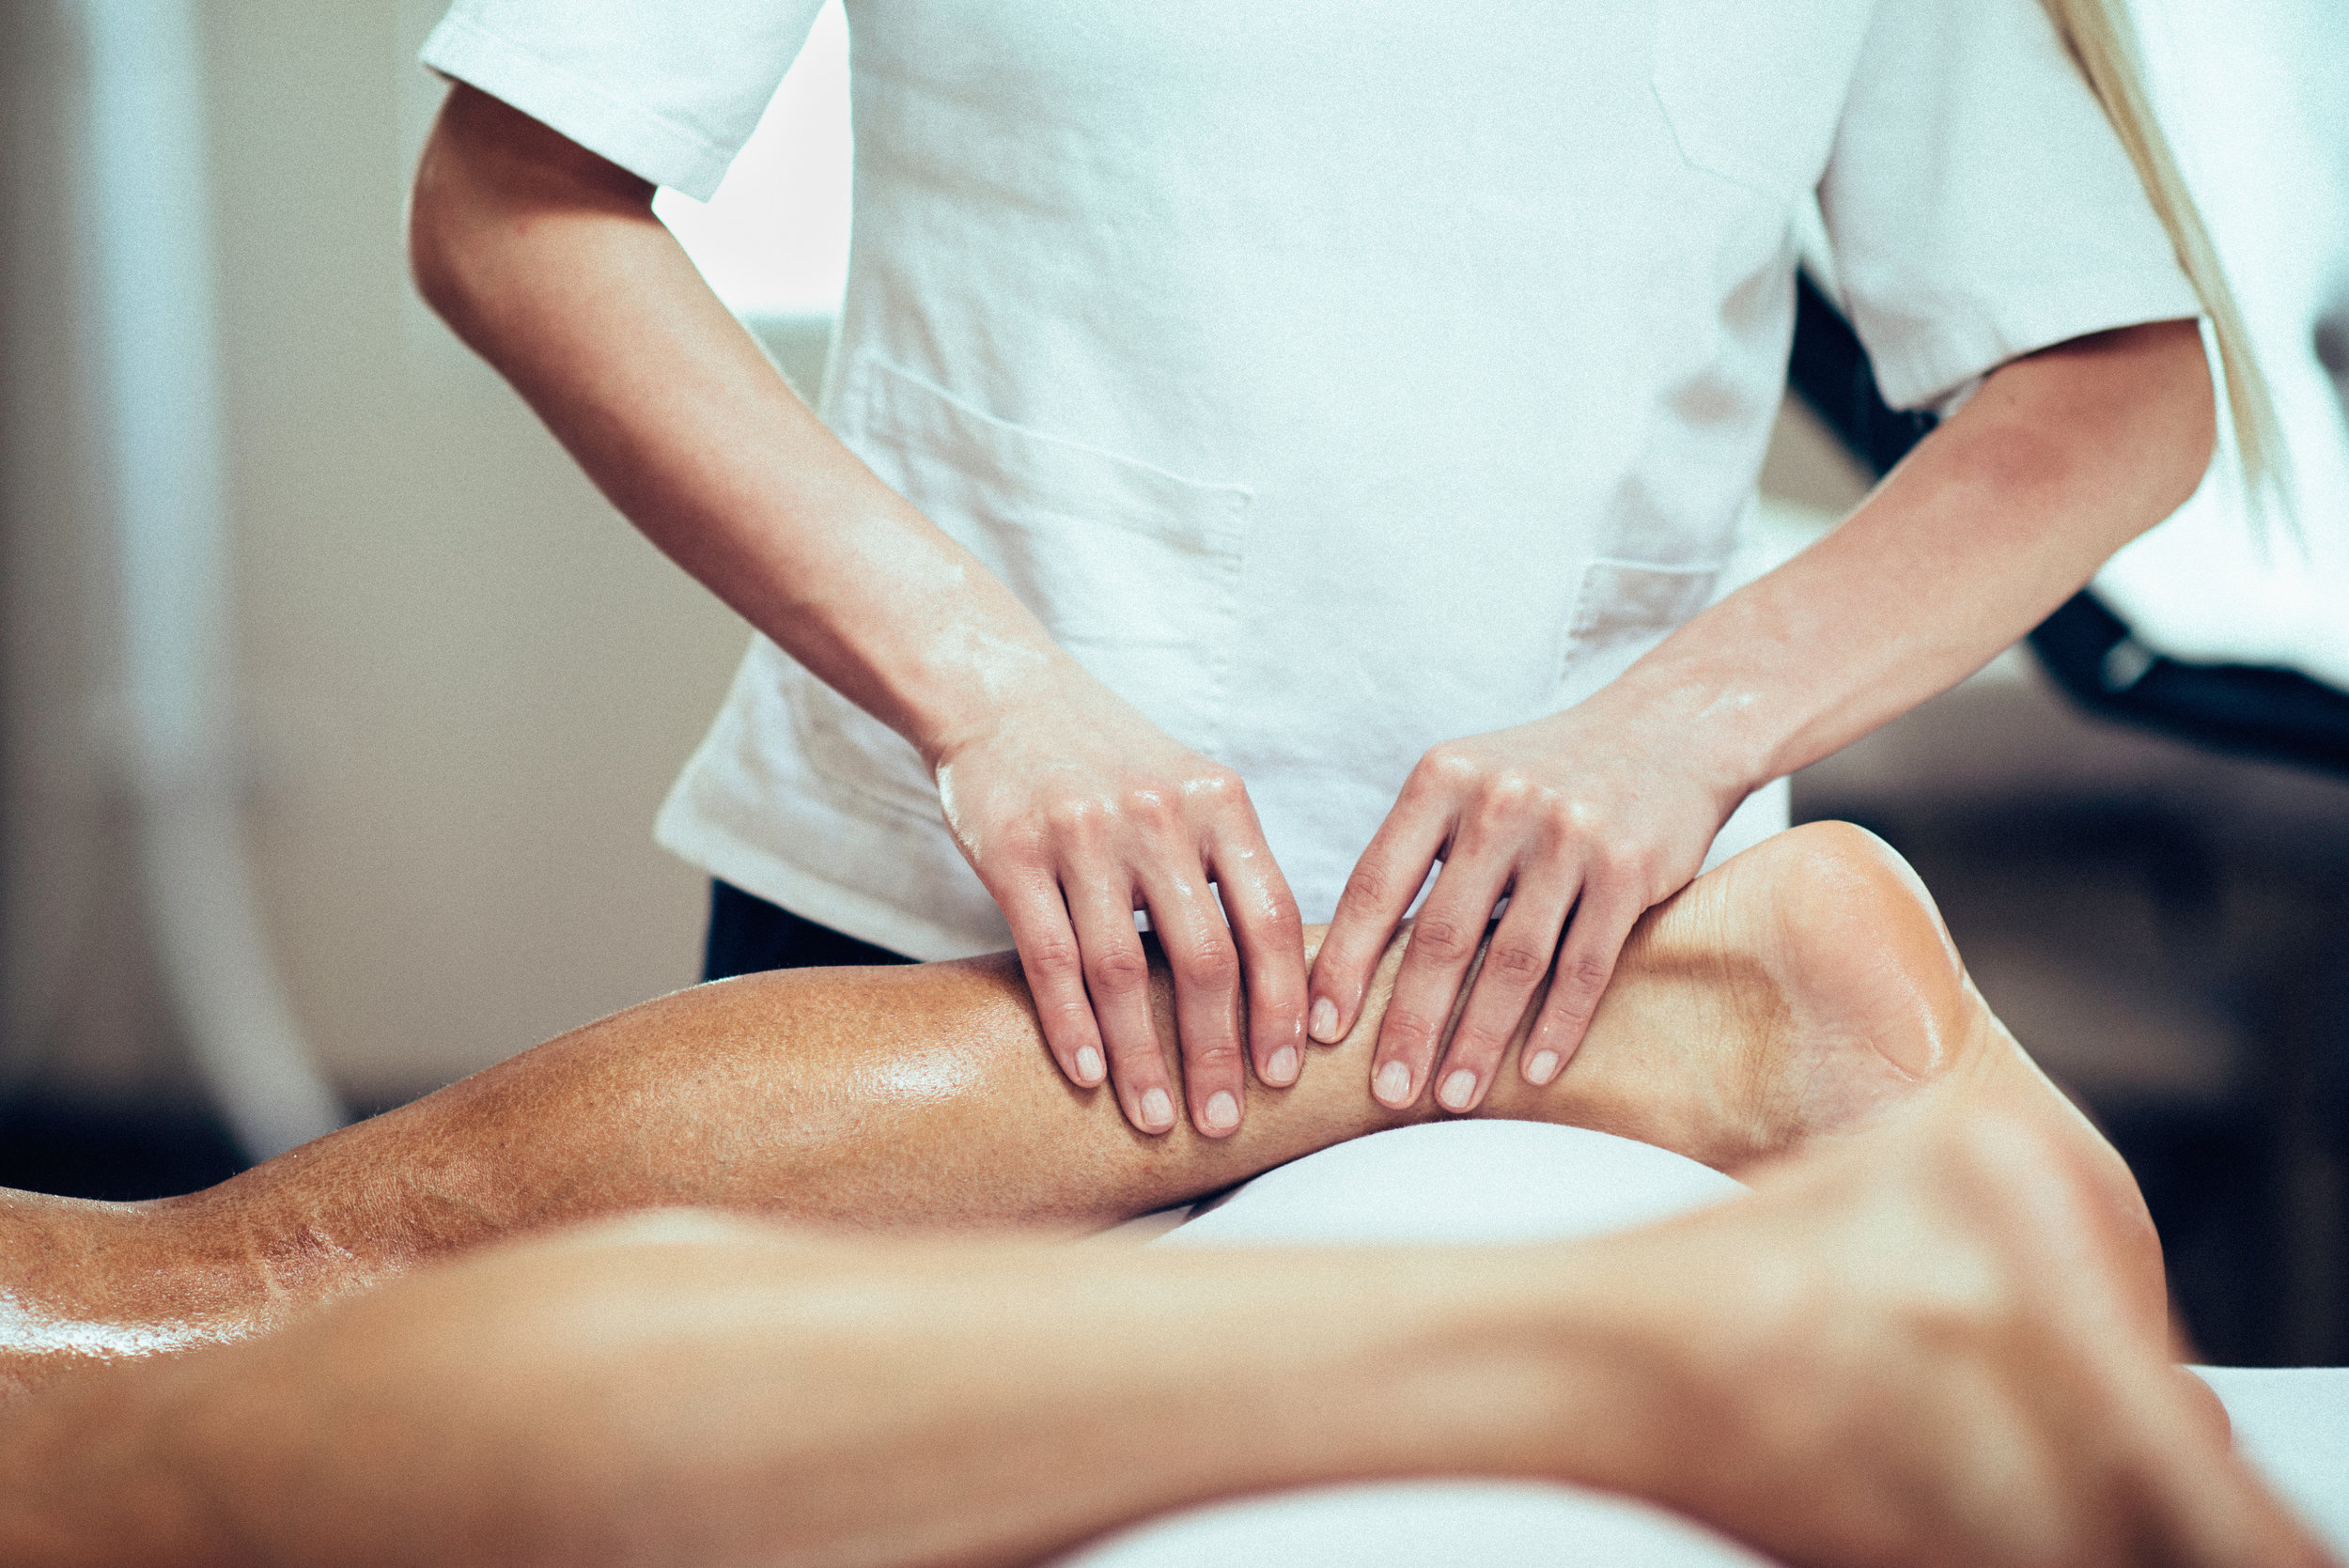 SE16 Physio - Sports Massage